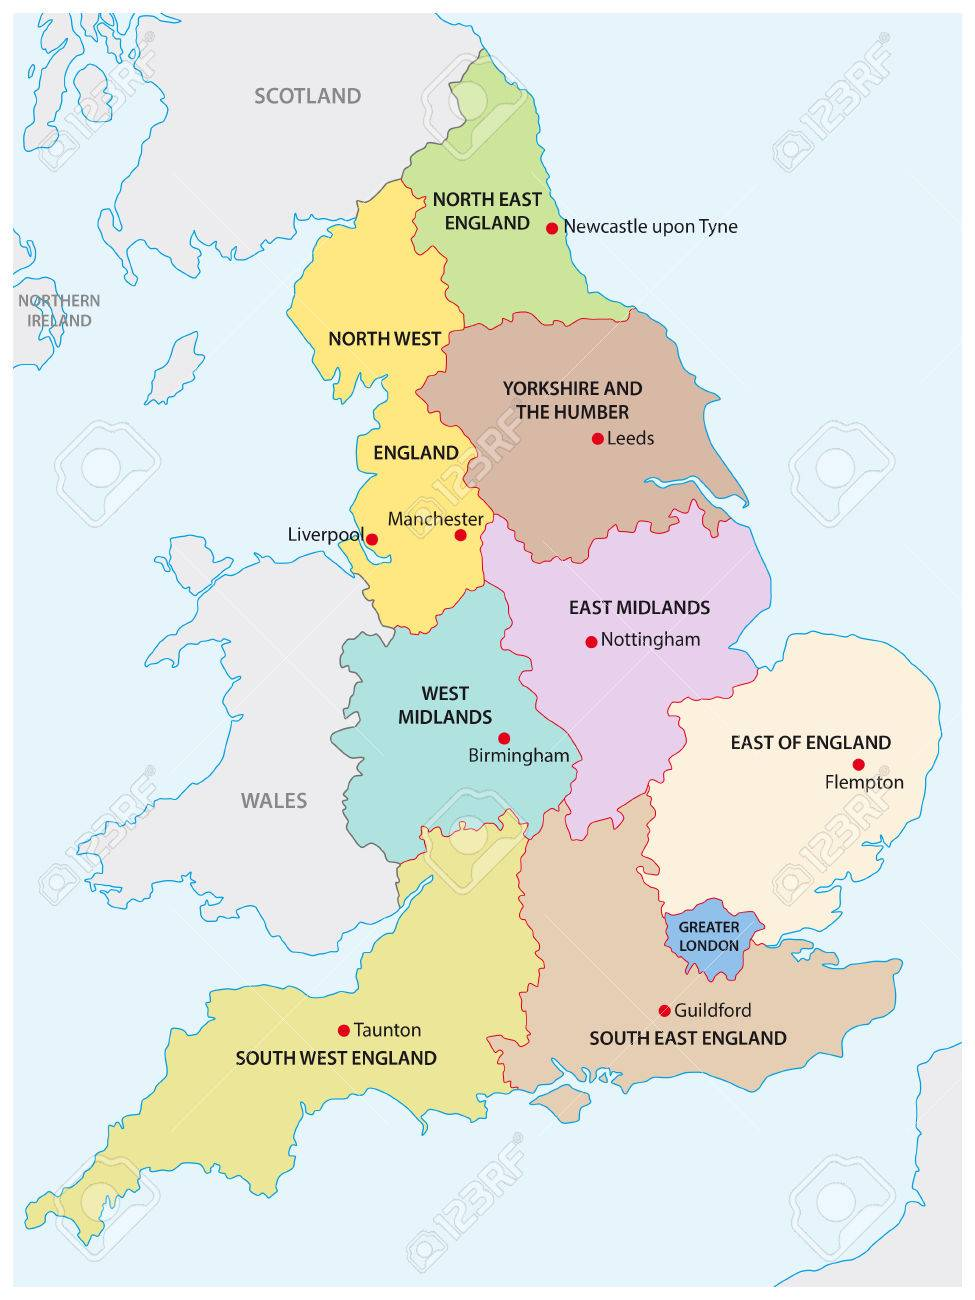 Outline Map Of The Nine Regions Of England Royalty Free Cliparts